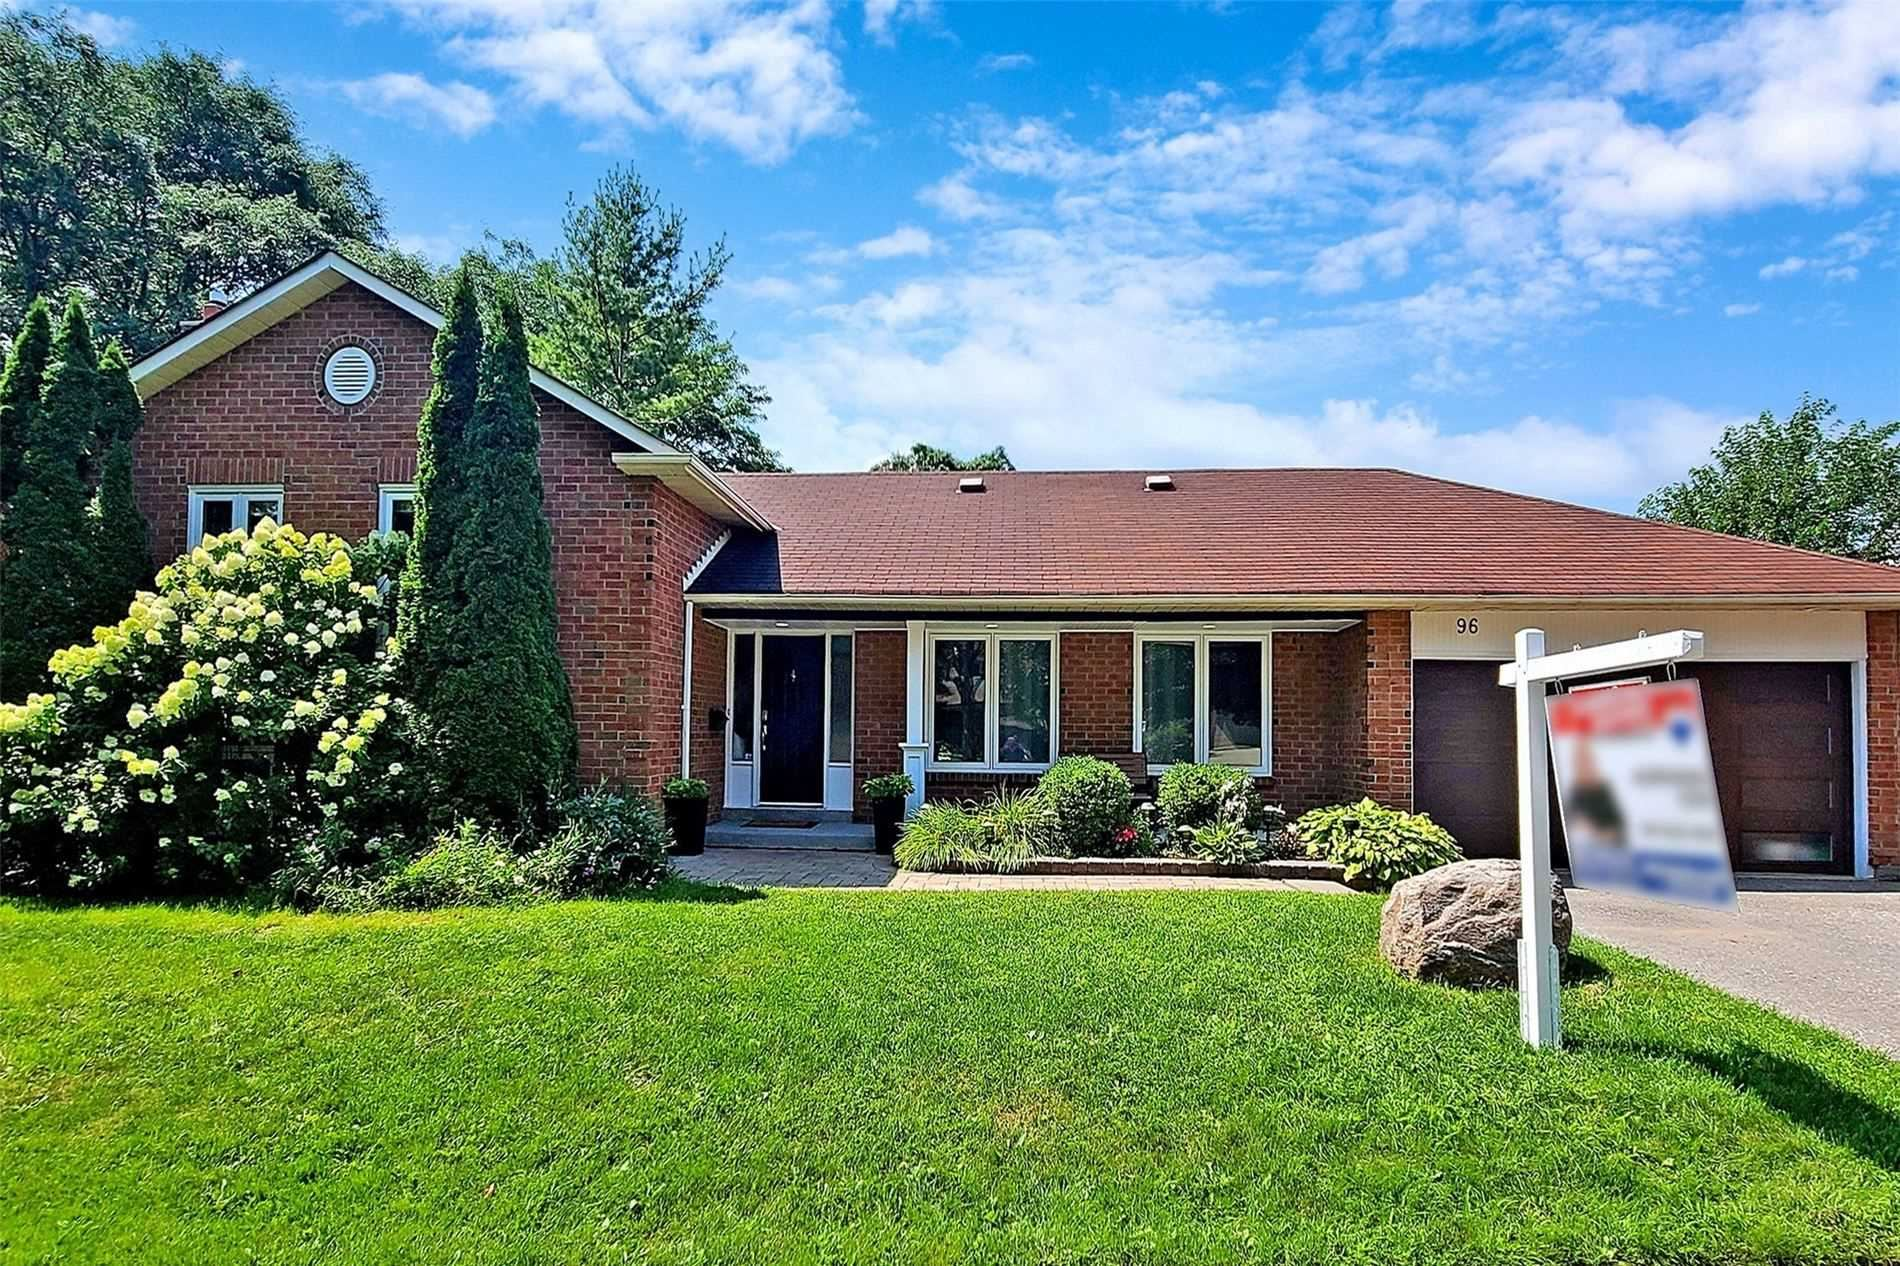 Photo of 96 Holliday Dr, Whitby, ON L1P1C9 (MLS # E5323118)